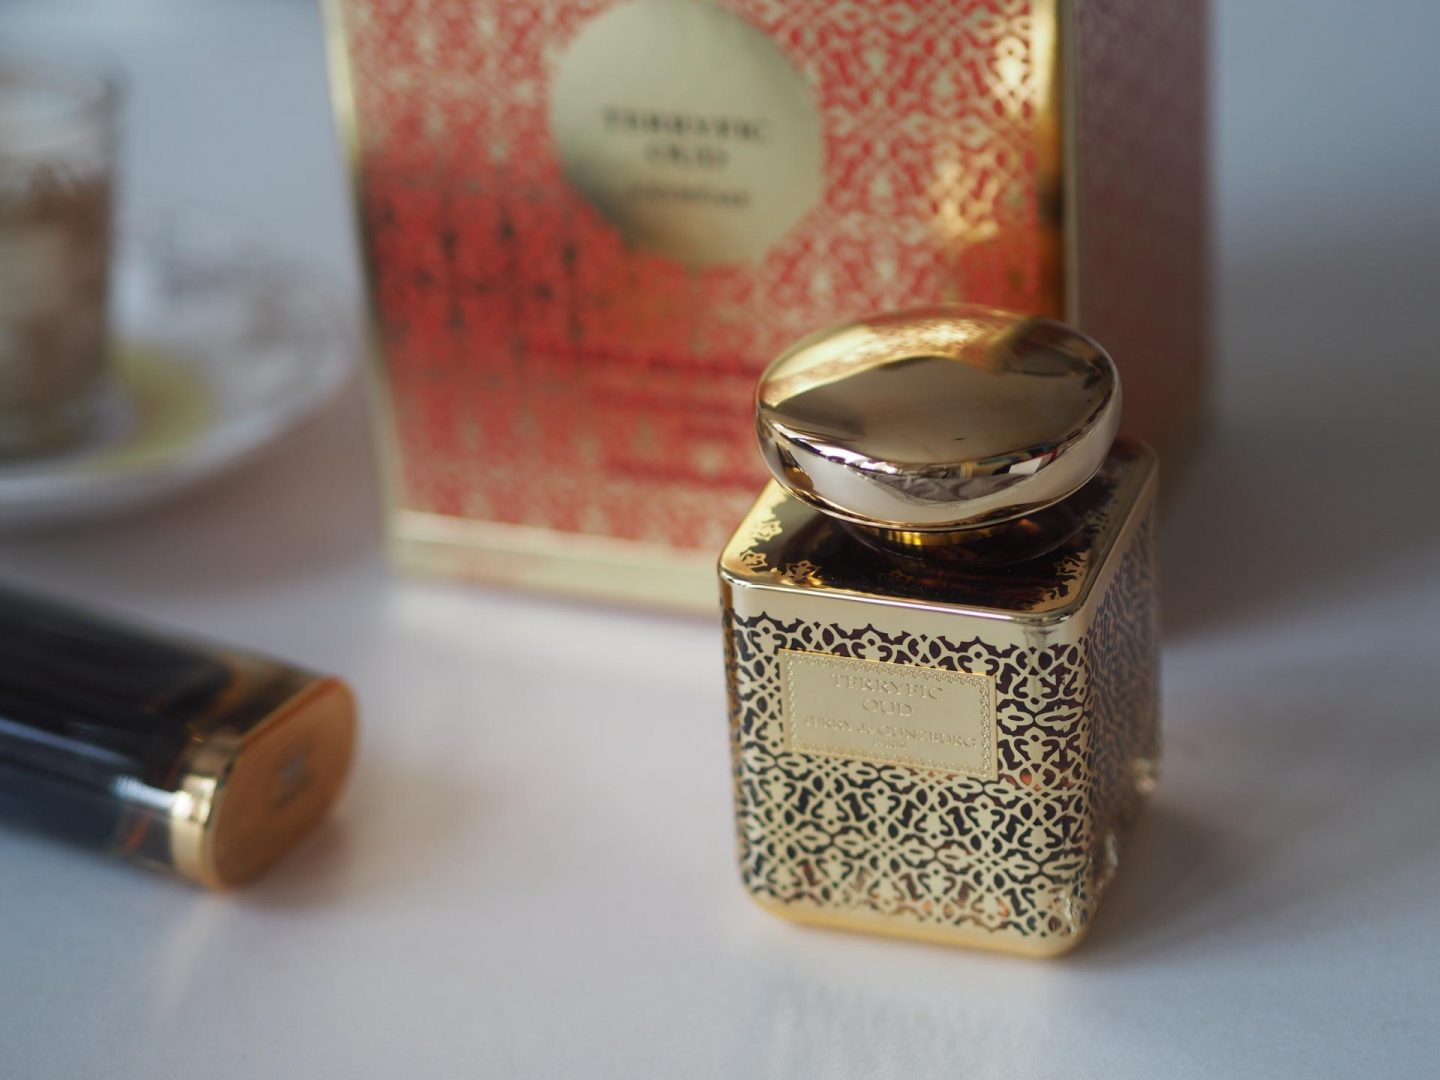 Valentine's Day gift ideas for her and Terry de Gunzberg Terryfic Oud Extreme